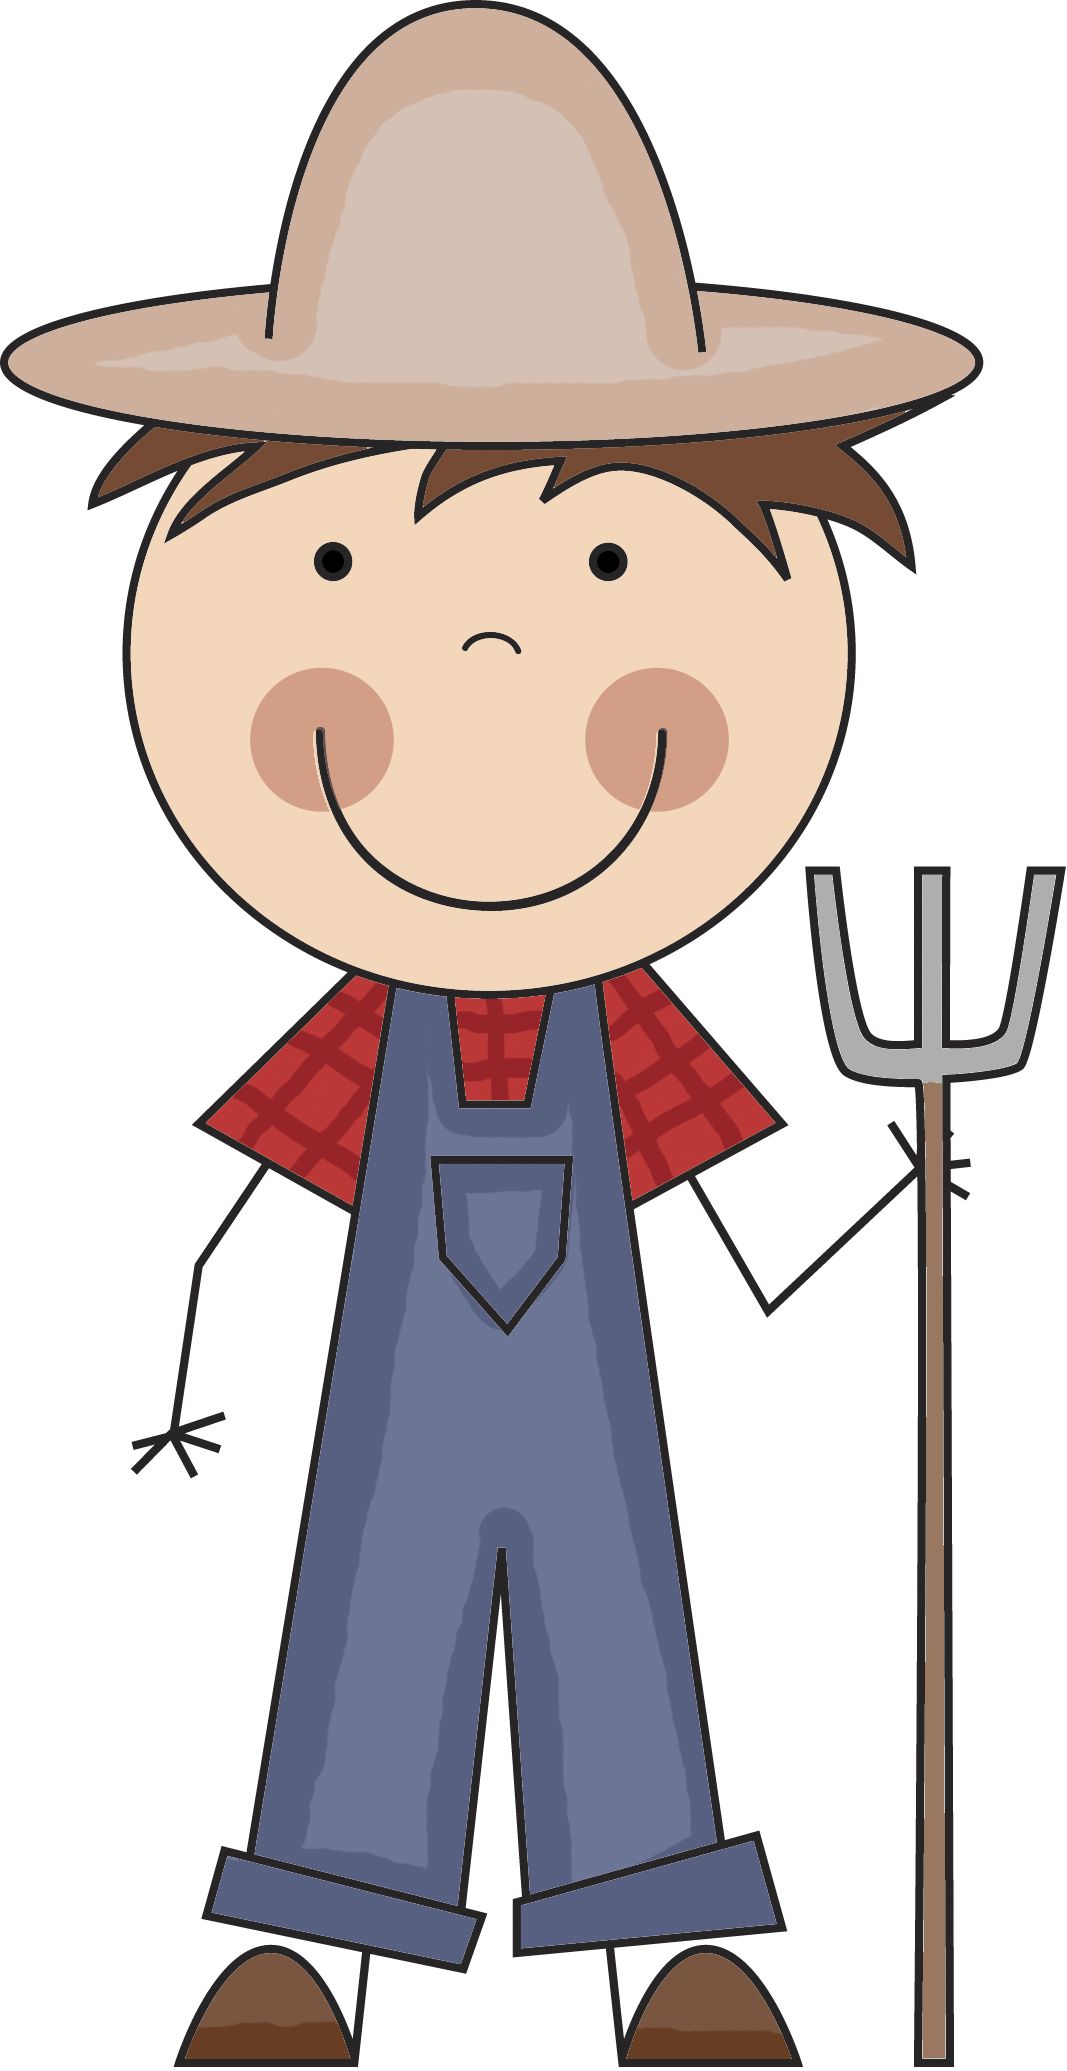 Kids clipart farmer. Png image purepng free